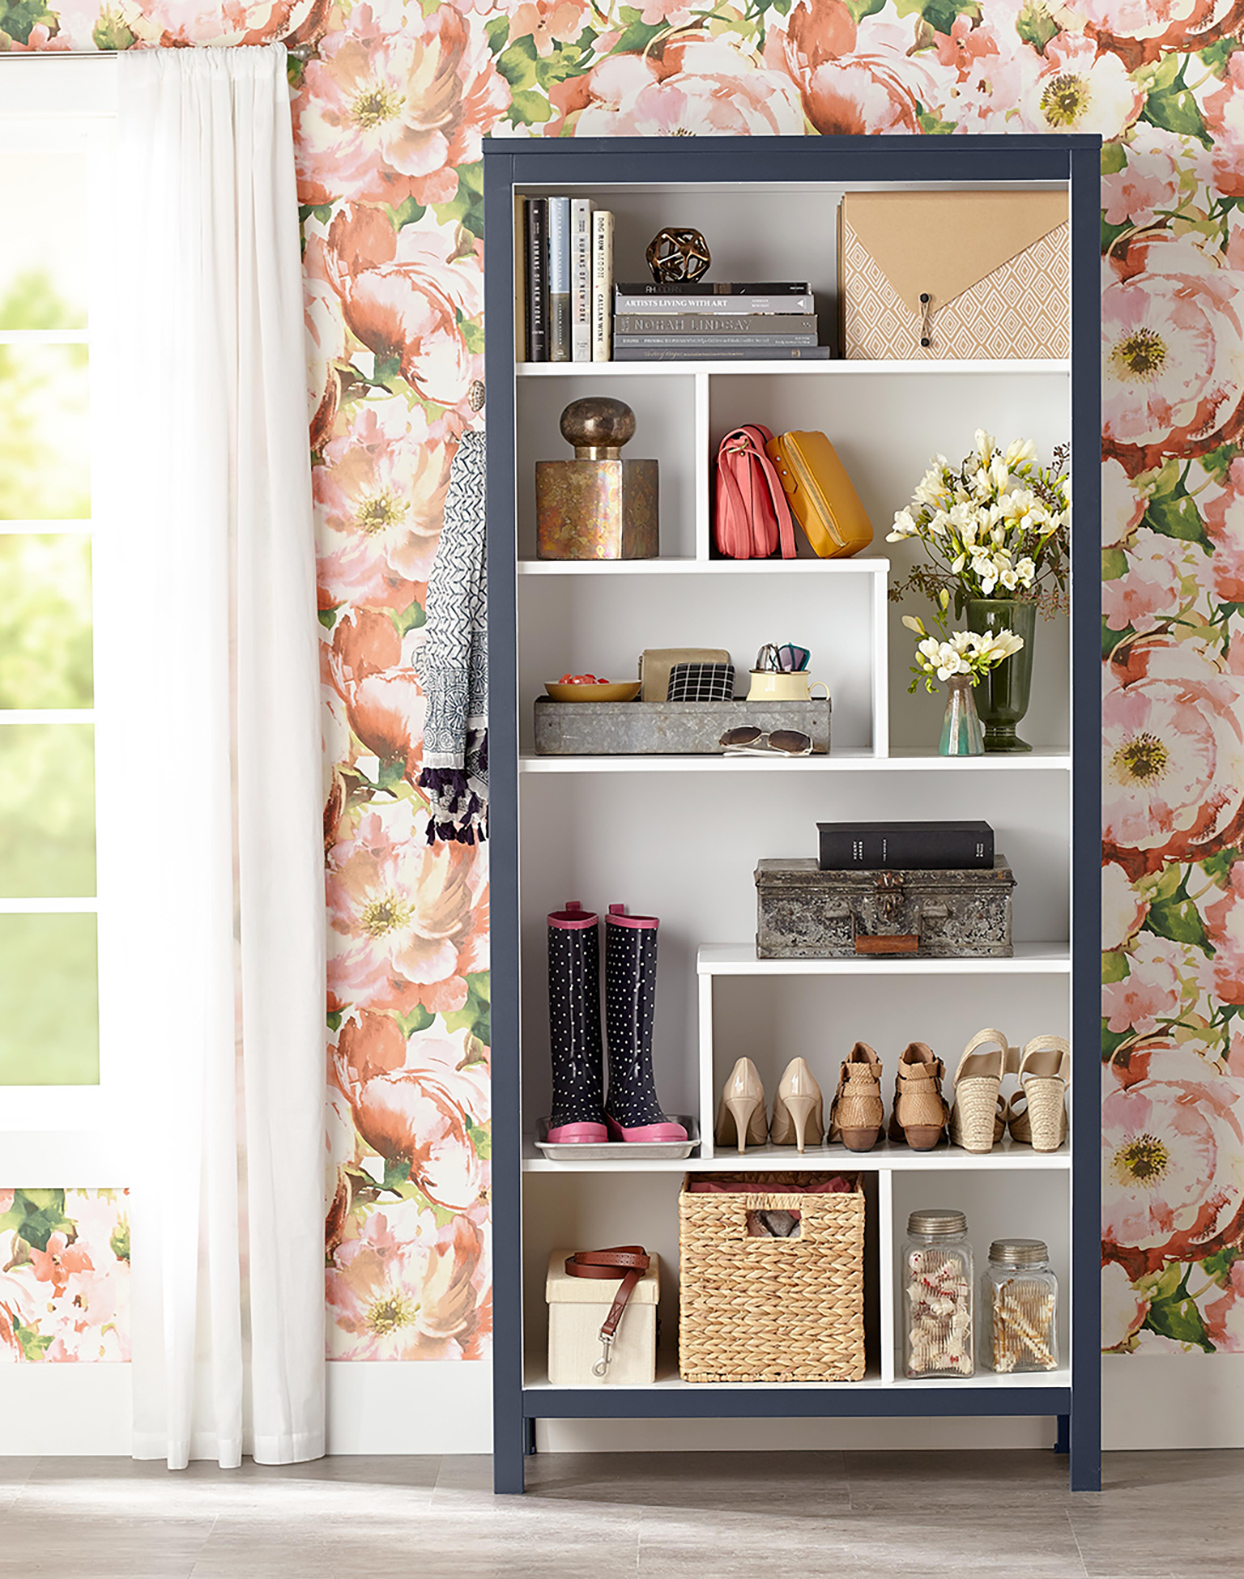 Transform Plain Shelves With These Before And After Bookcase Makeover Ideas Better Homes Gardens